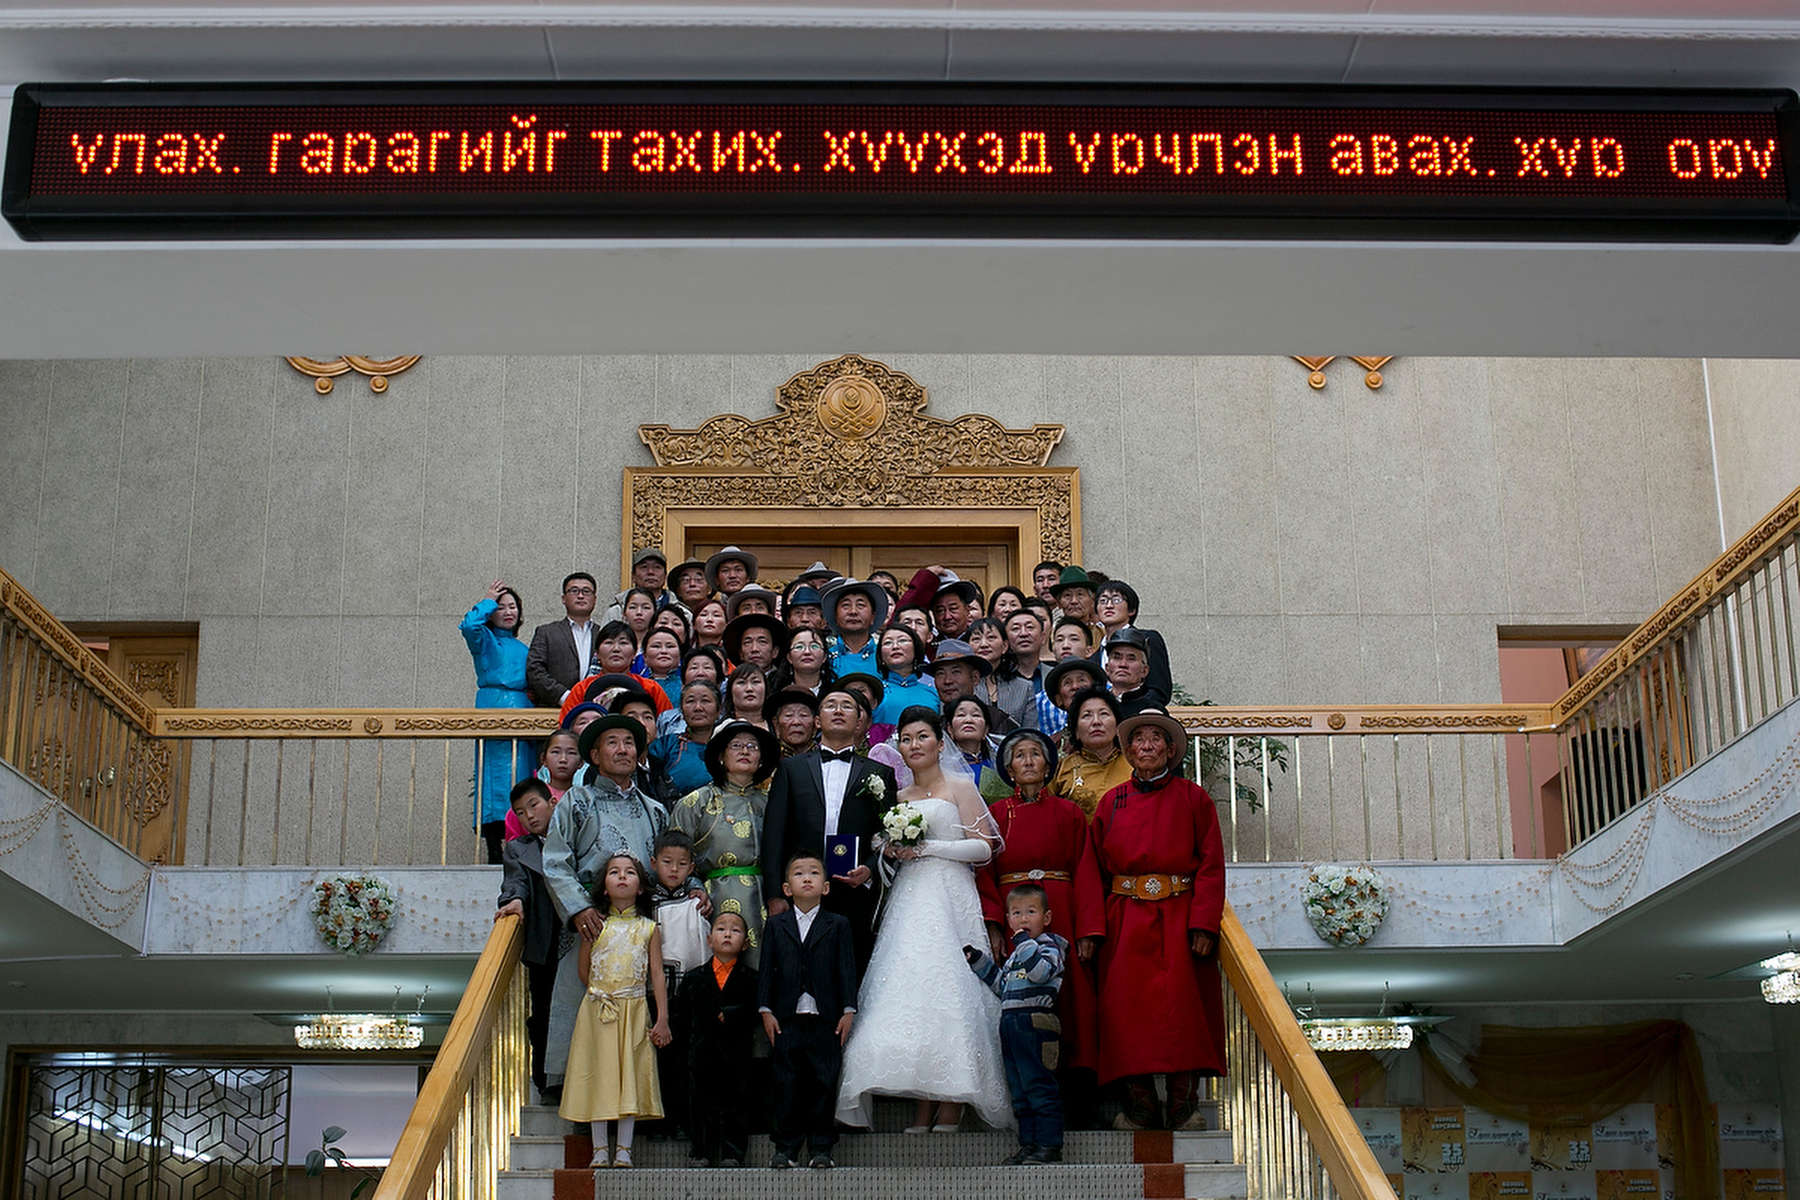 ULAANBATAAR, MONGOLIA - OCTOBER 18: A Mongolian wedding party poses for a photo at the wedding hall where many couples turned out to get married on a special day on the Lunar calendar weddings October 18, 2012 Ulaanbataar, Mongolia. Some 100 years ago, Mongolia gained independence from Qing China, and more than 20 years ago it removed itself from the Soviet Bloc. Since then, the country has been undergoing massive social, economic and political changes. The Oyu Tolgoi, the copper and gold mine is Mongolia's biggest foreign investment project to date adding an estimated 35% value to the country's GDP. Mongolia is a land of amazing contrasts and is the most sparsely populated country on earth with fewer than 3 million people. (Photo by Paula Bronstein/Getty Images)